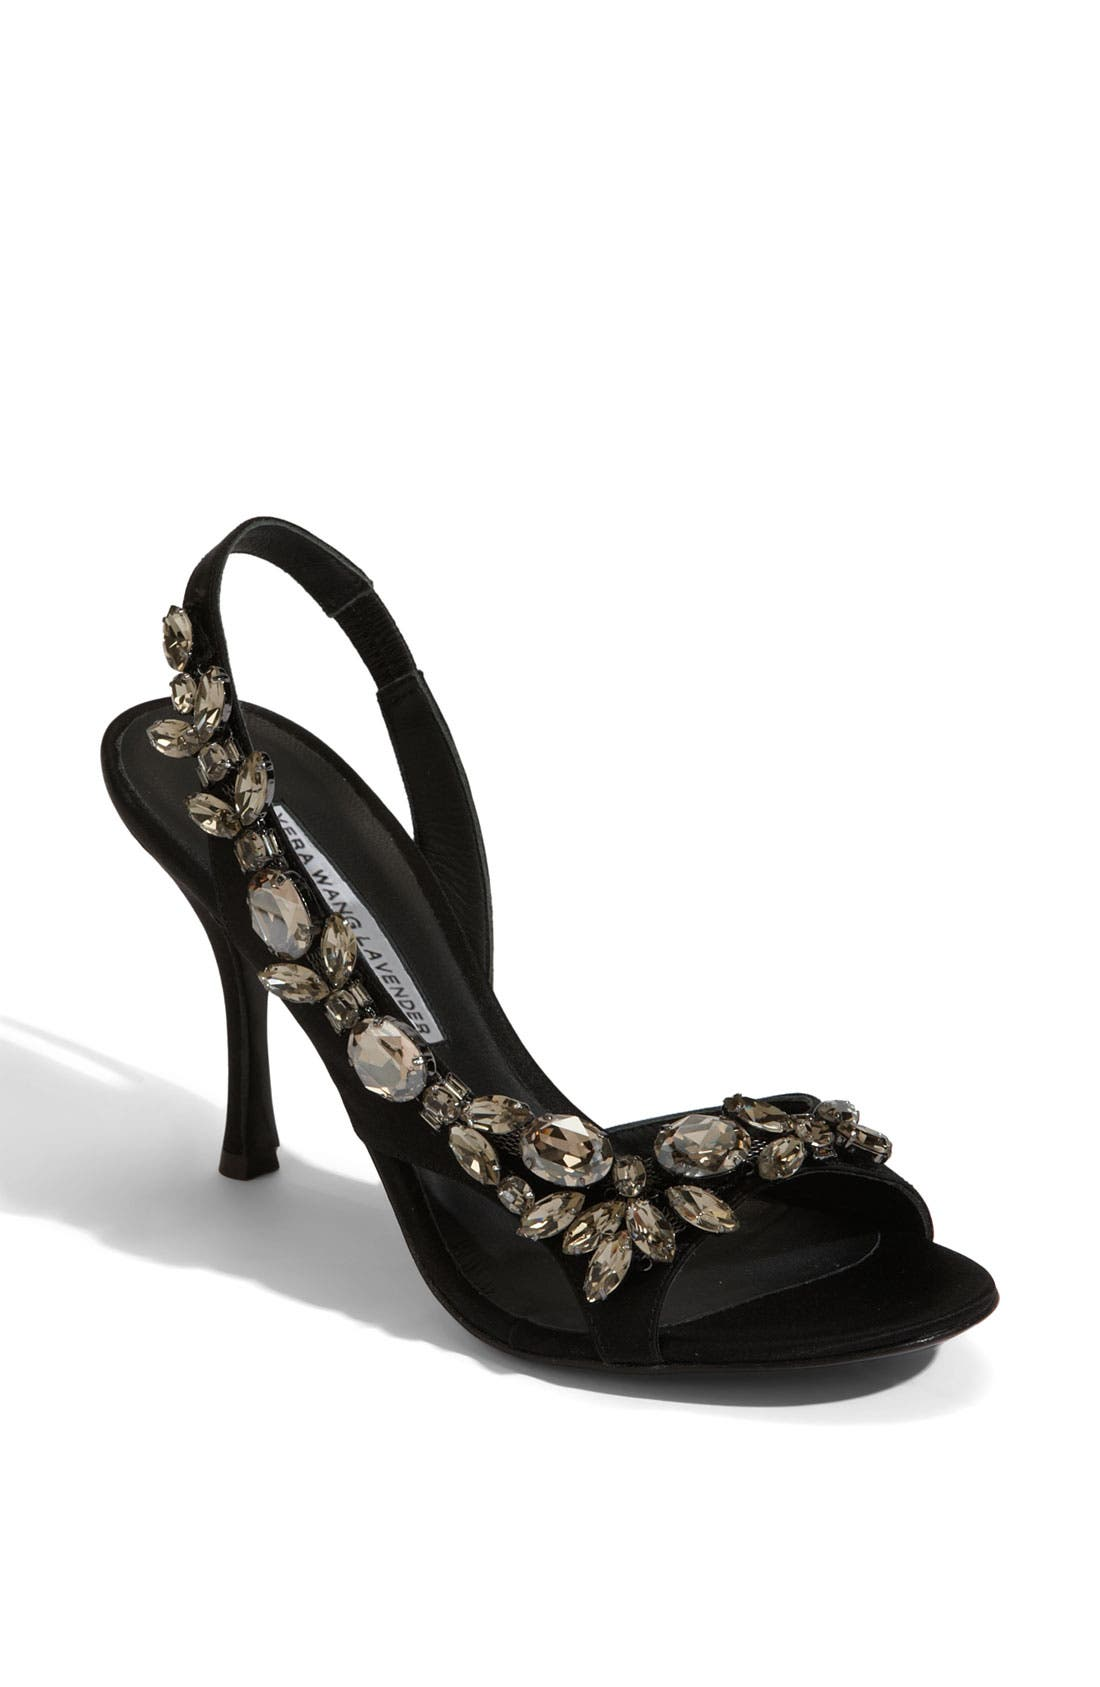 Alternate Image 1 Selected - Vera Wang Lavender 'Elizabeth' Sandal